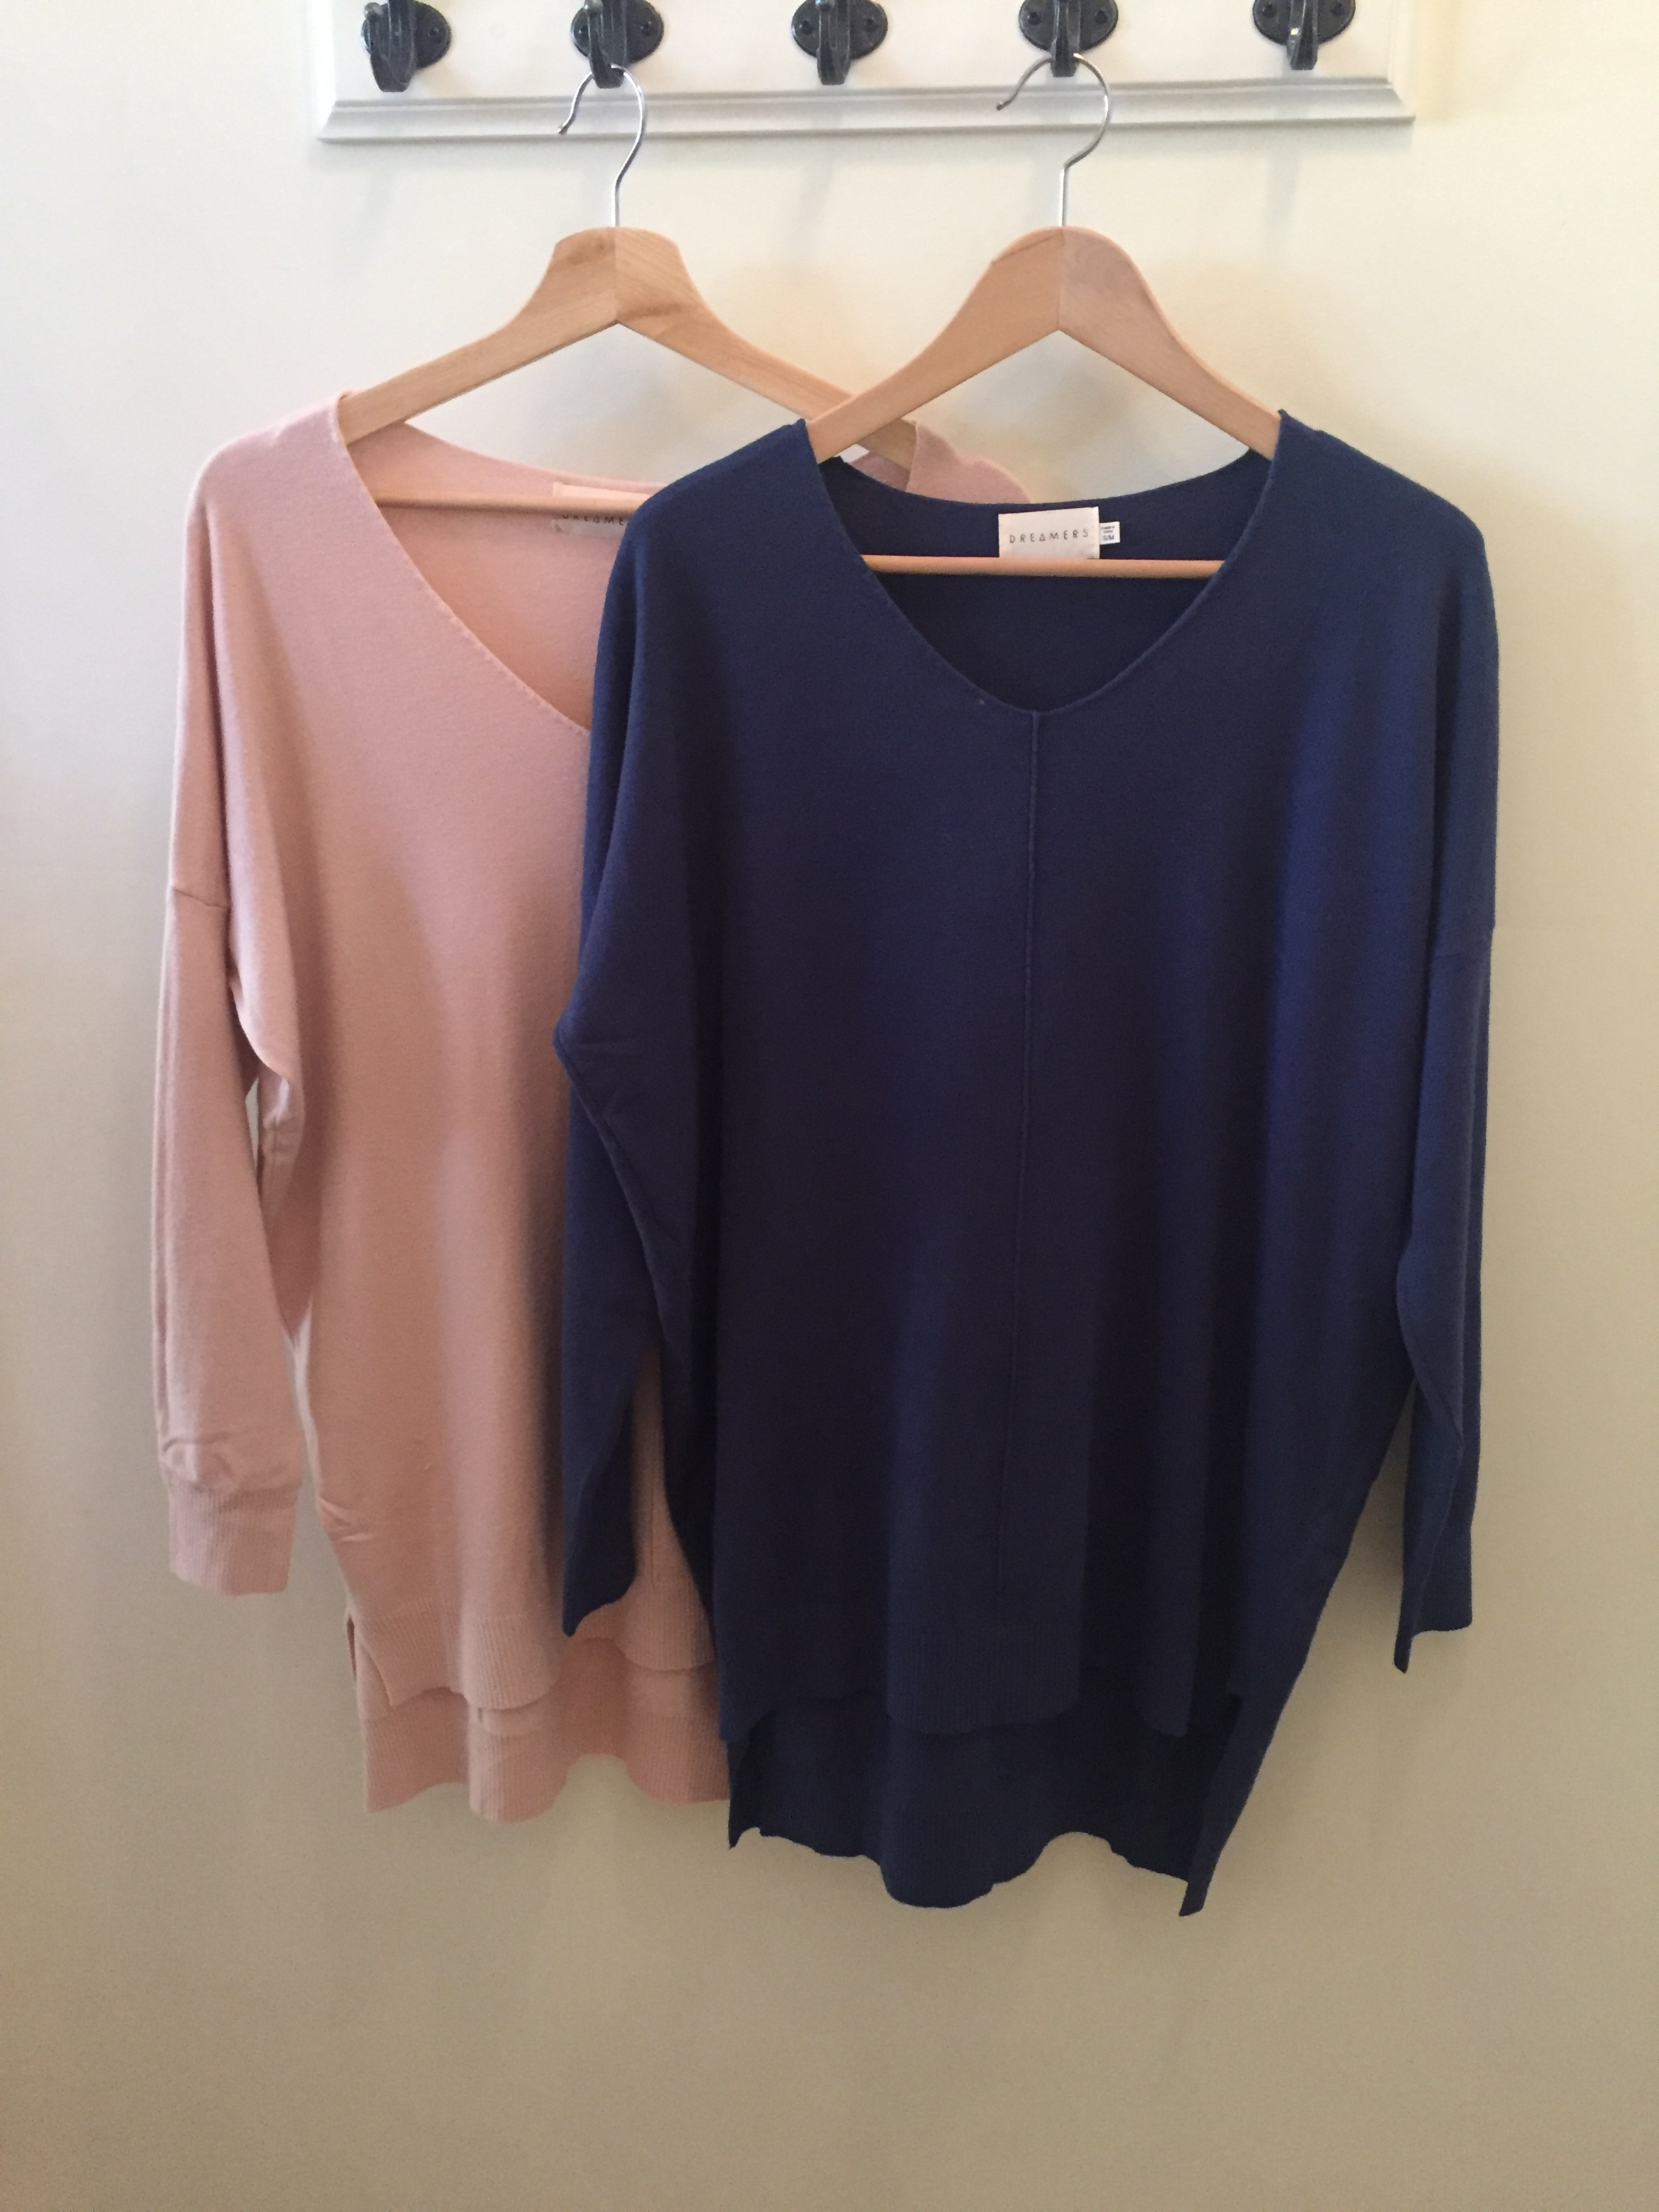 Dreamers V-Neck Sweaters, $42